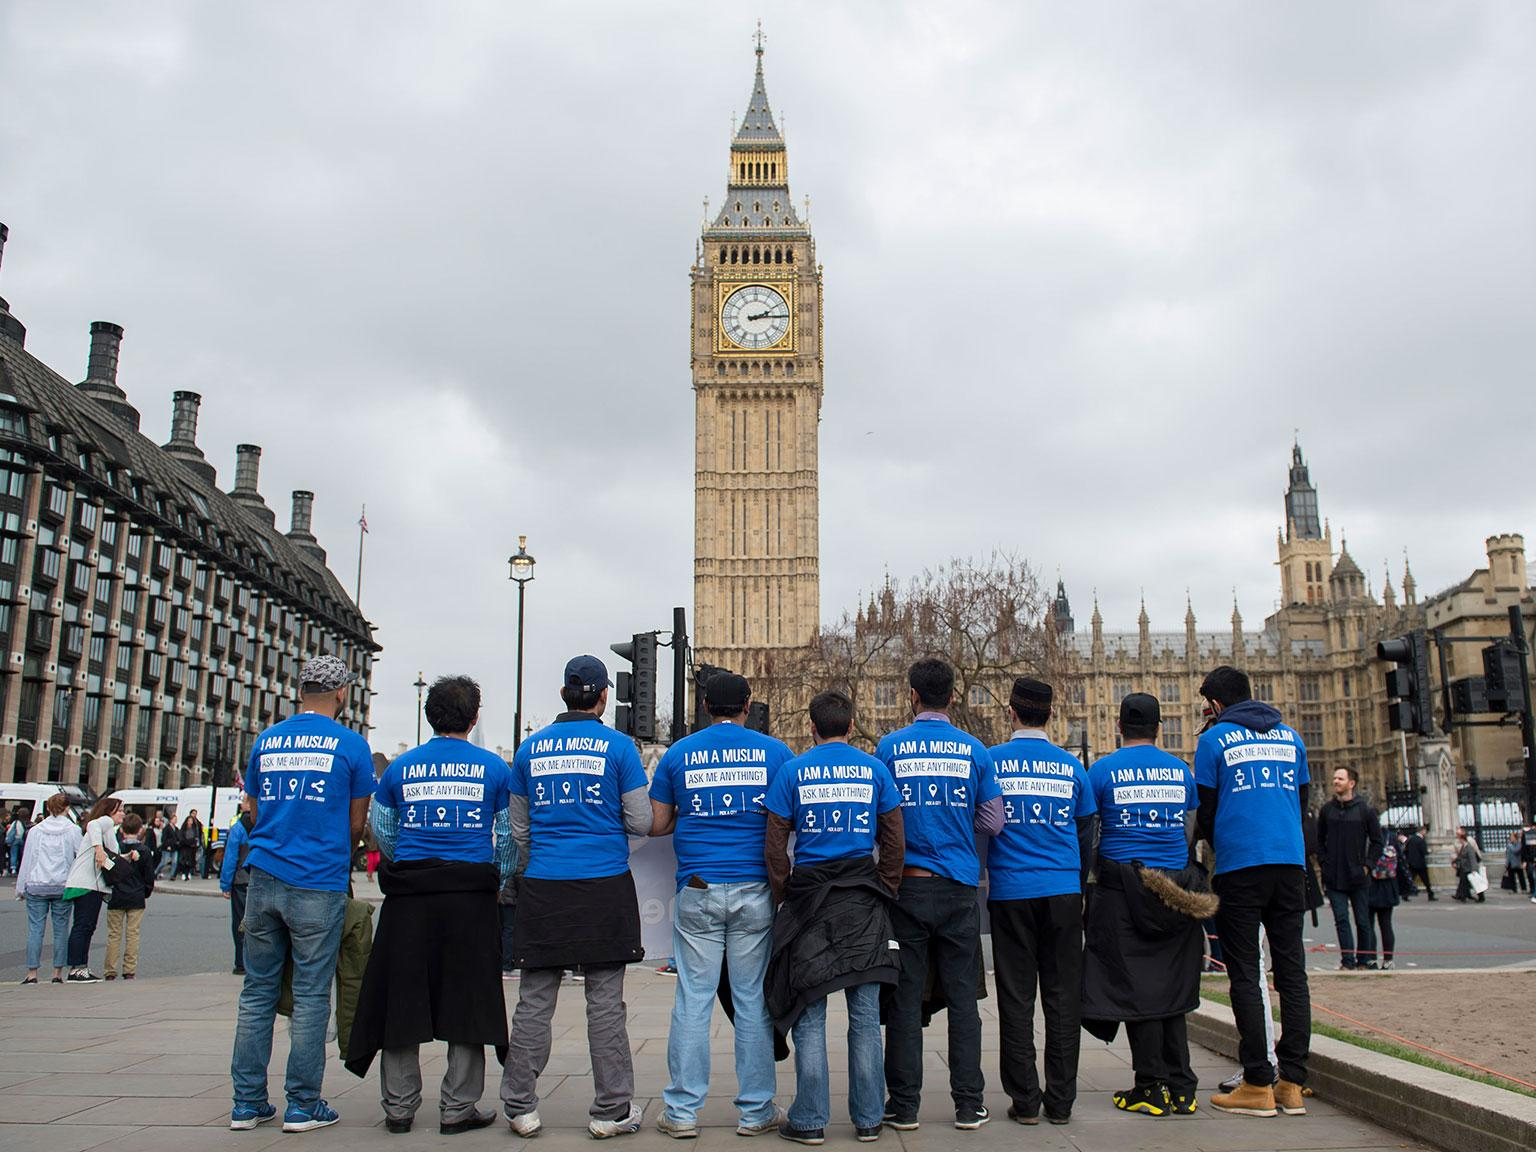 Islamophobia driving belief in myths about Muslims in British society, MPs say